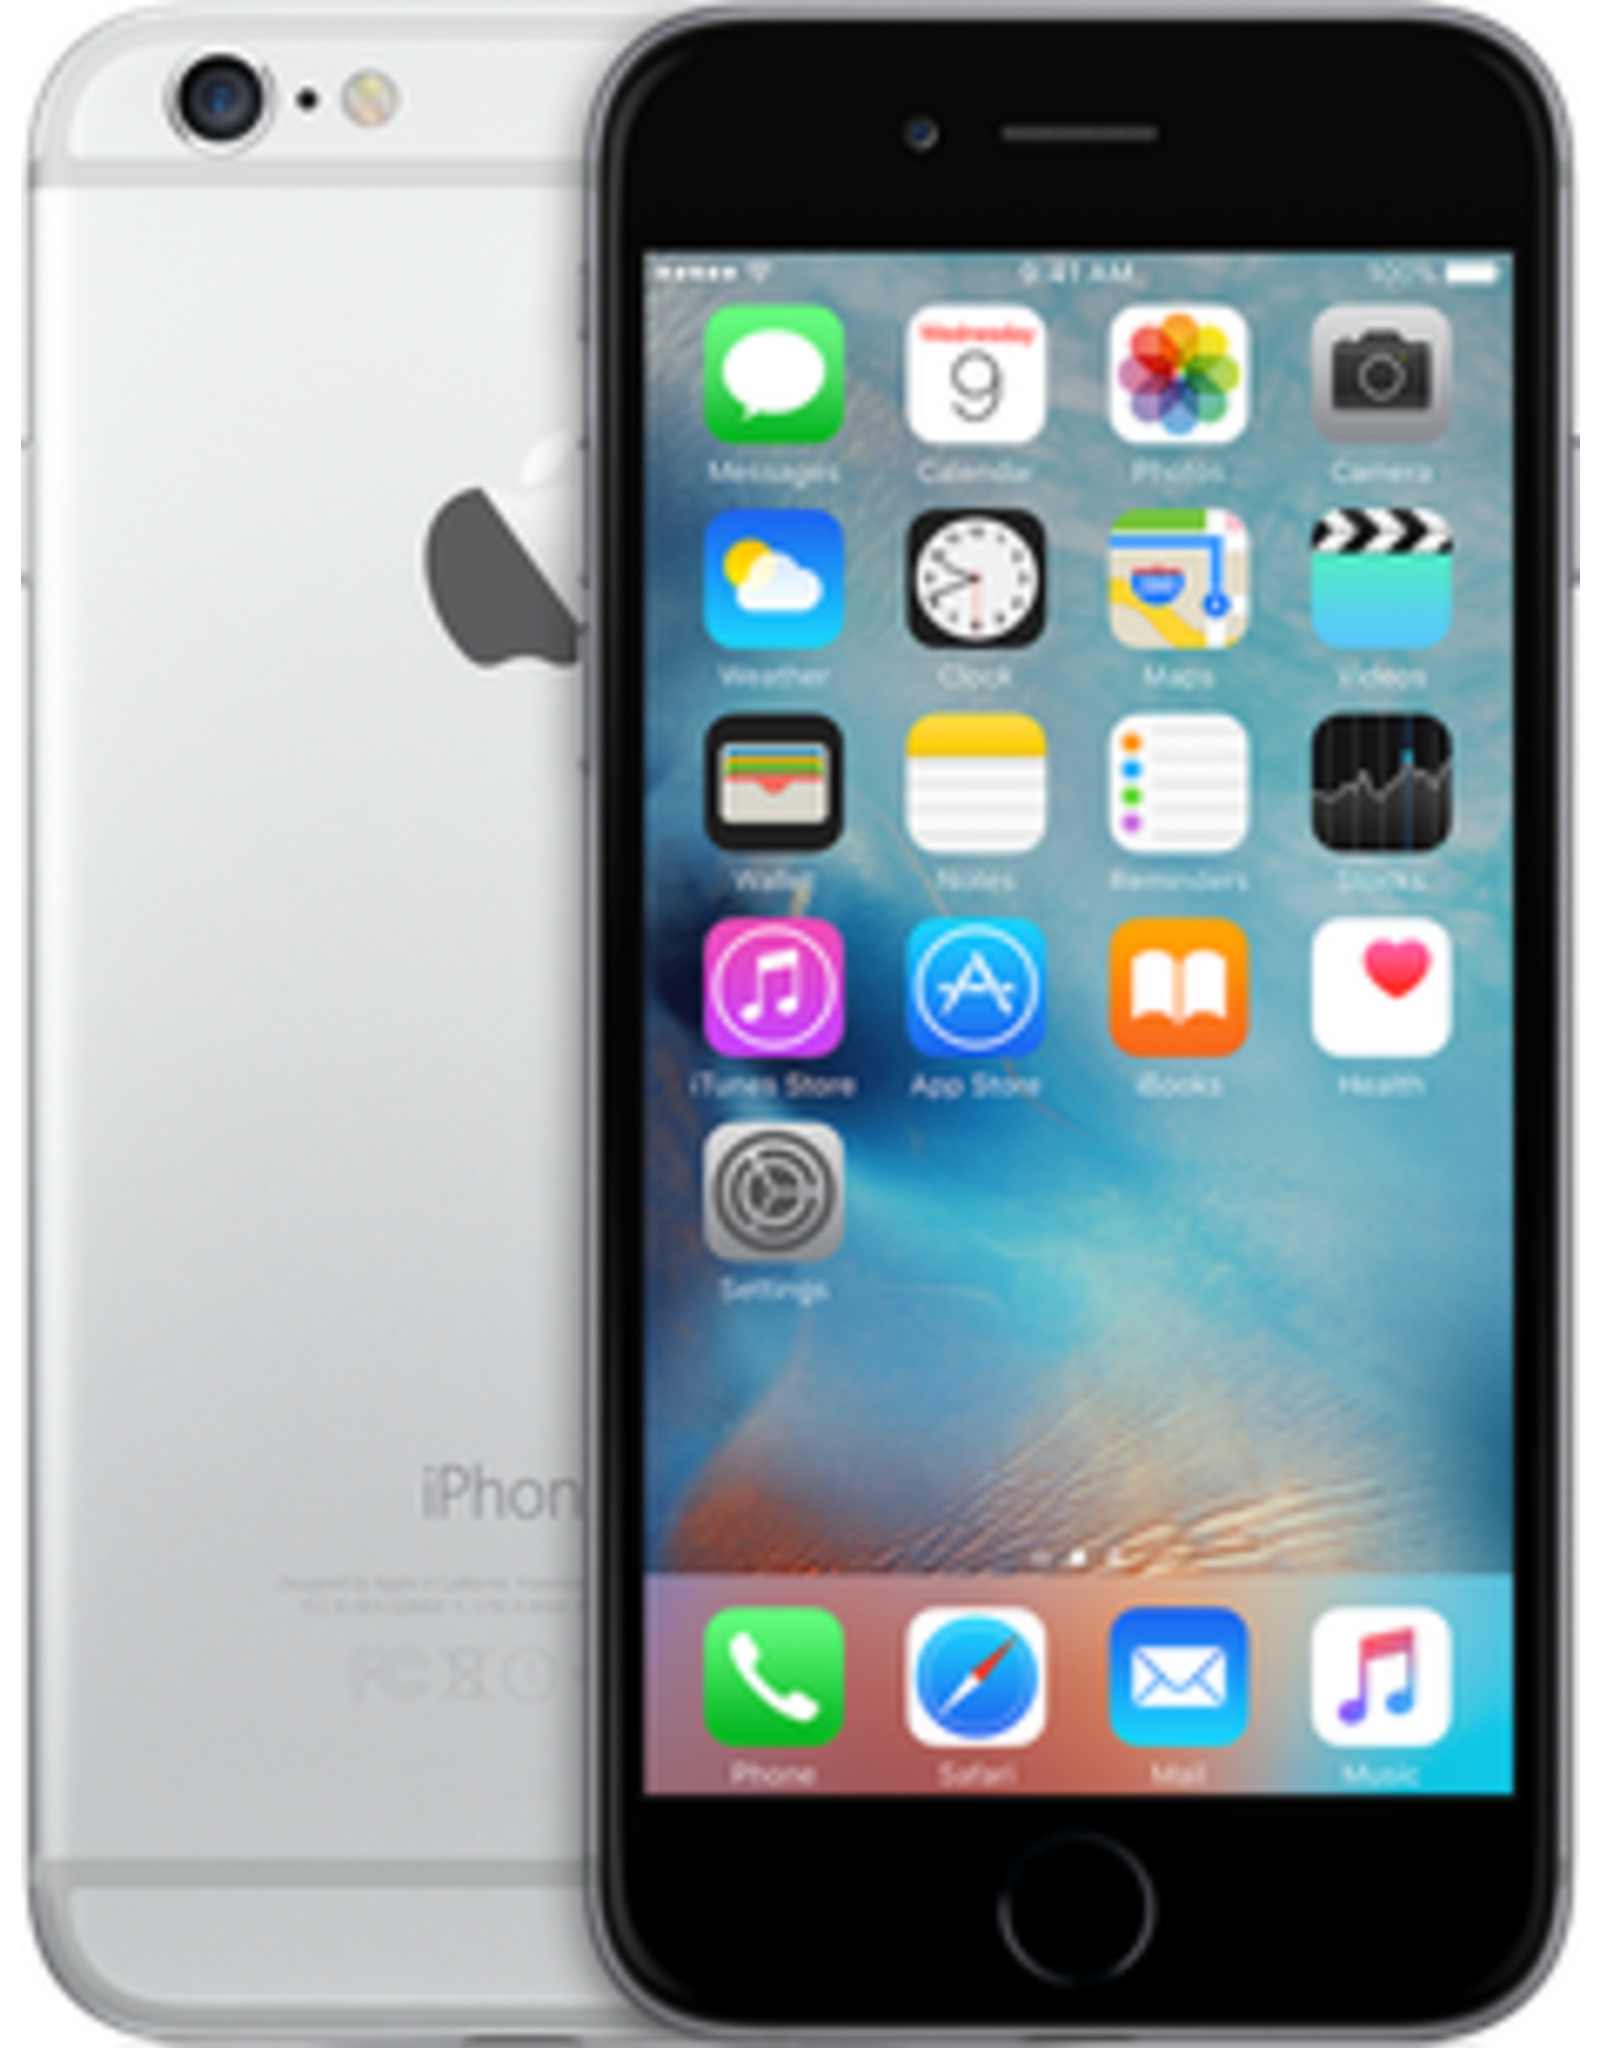 Apple iPhone 6 Plus (64GB, Space Gray) - 30 Day Exchange